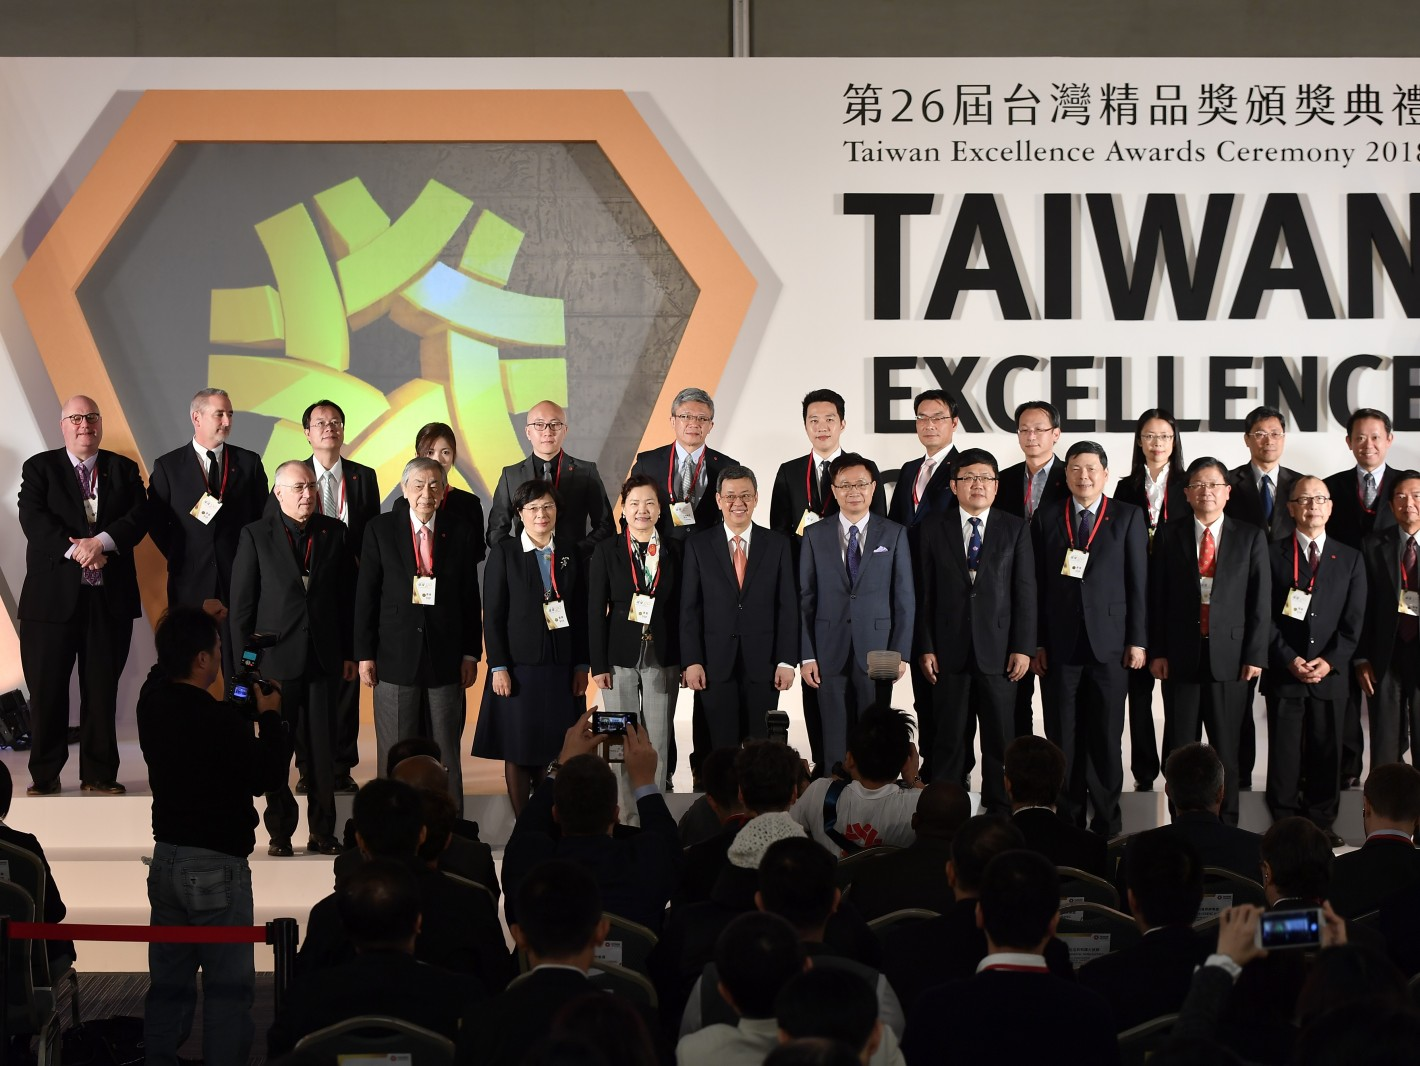 Awardees at the 2017 Taiwan Excellence Awards (Image: Taiwan Excellence Awards)